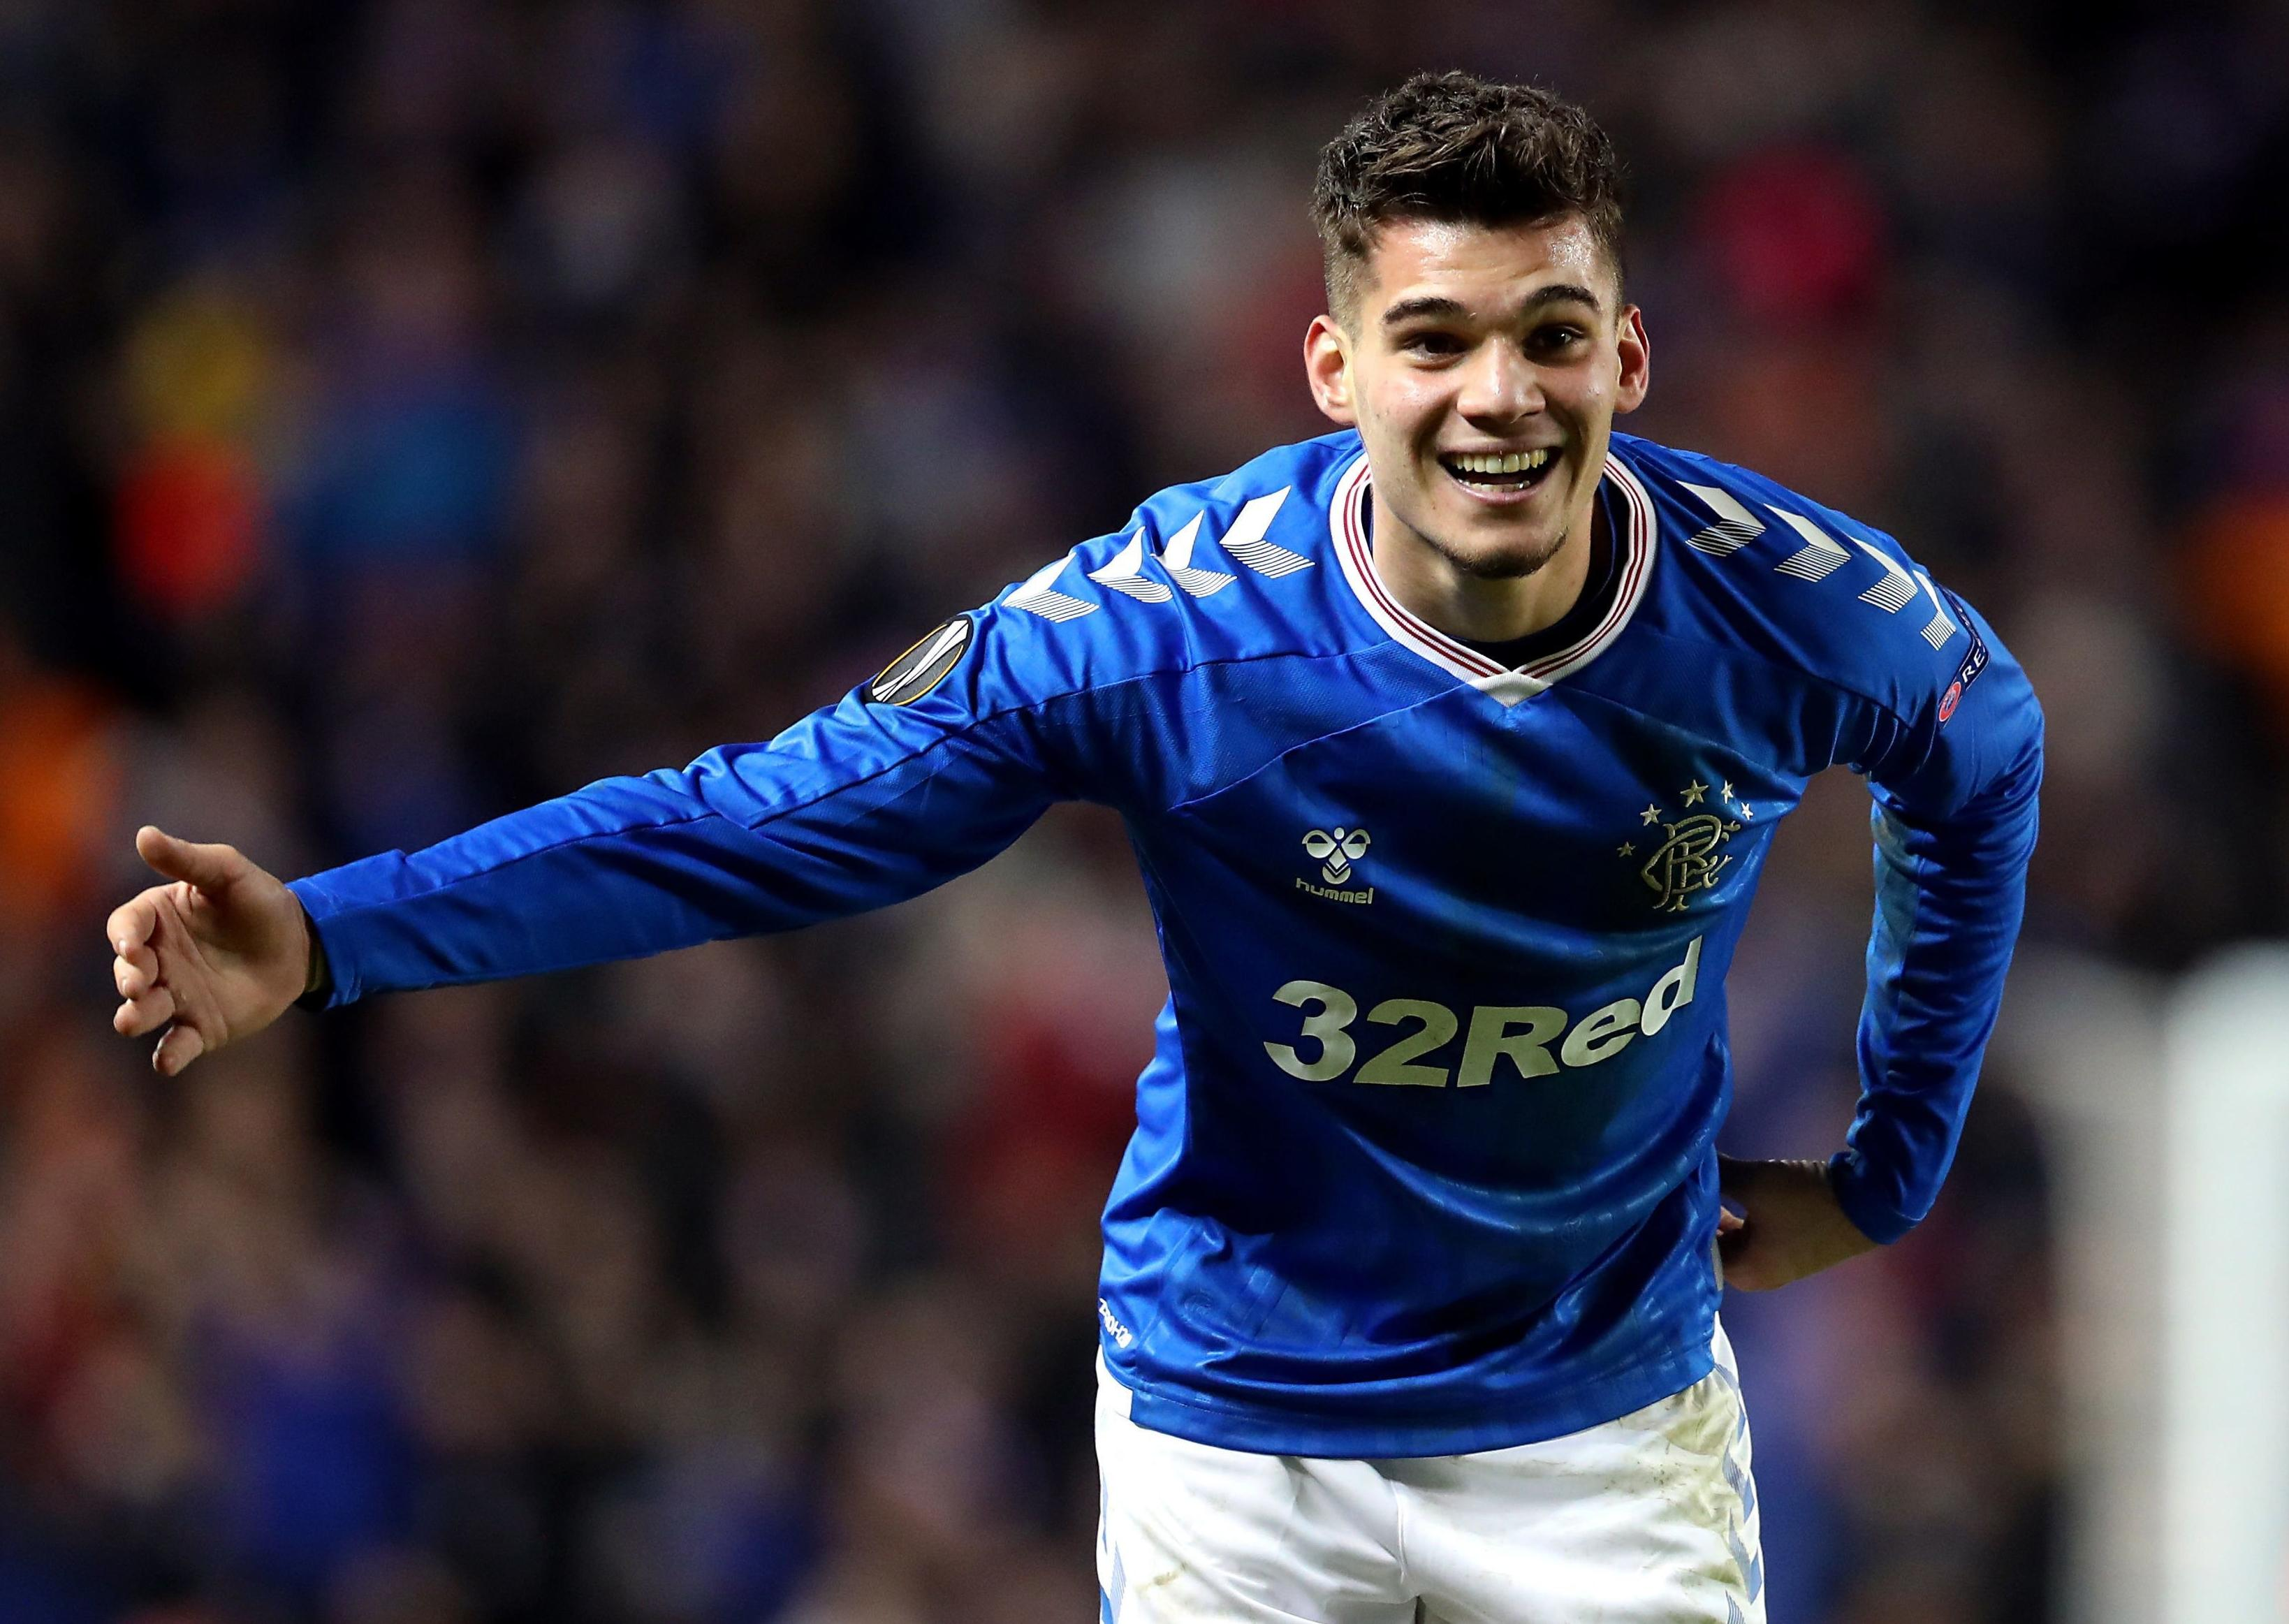 Superstar dad Gheorghe Hagi knows Rangers is the right club for Ianis Hagi | The Scotsman